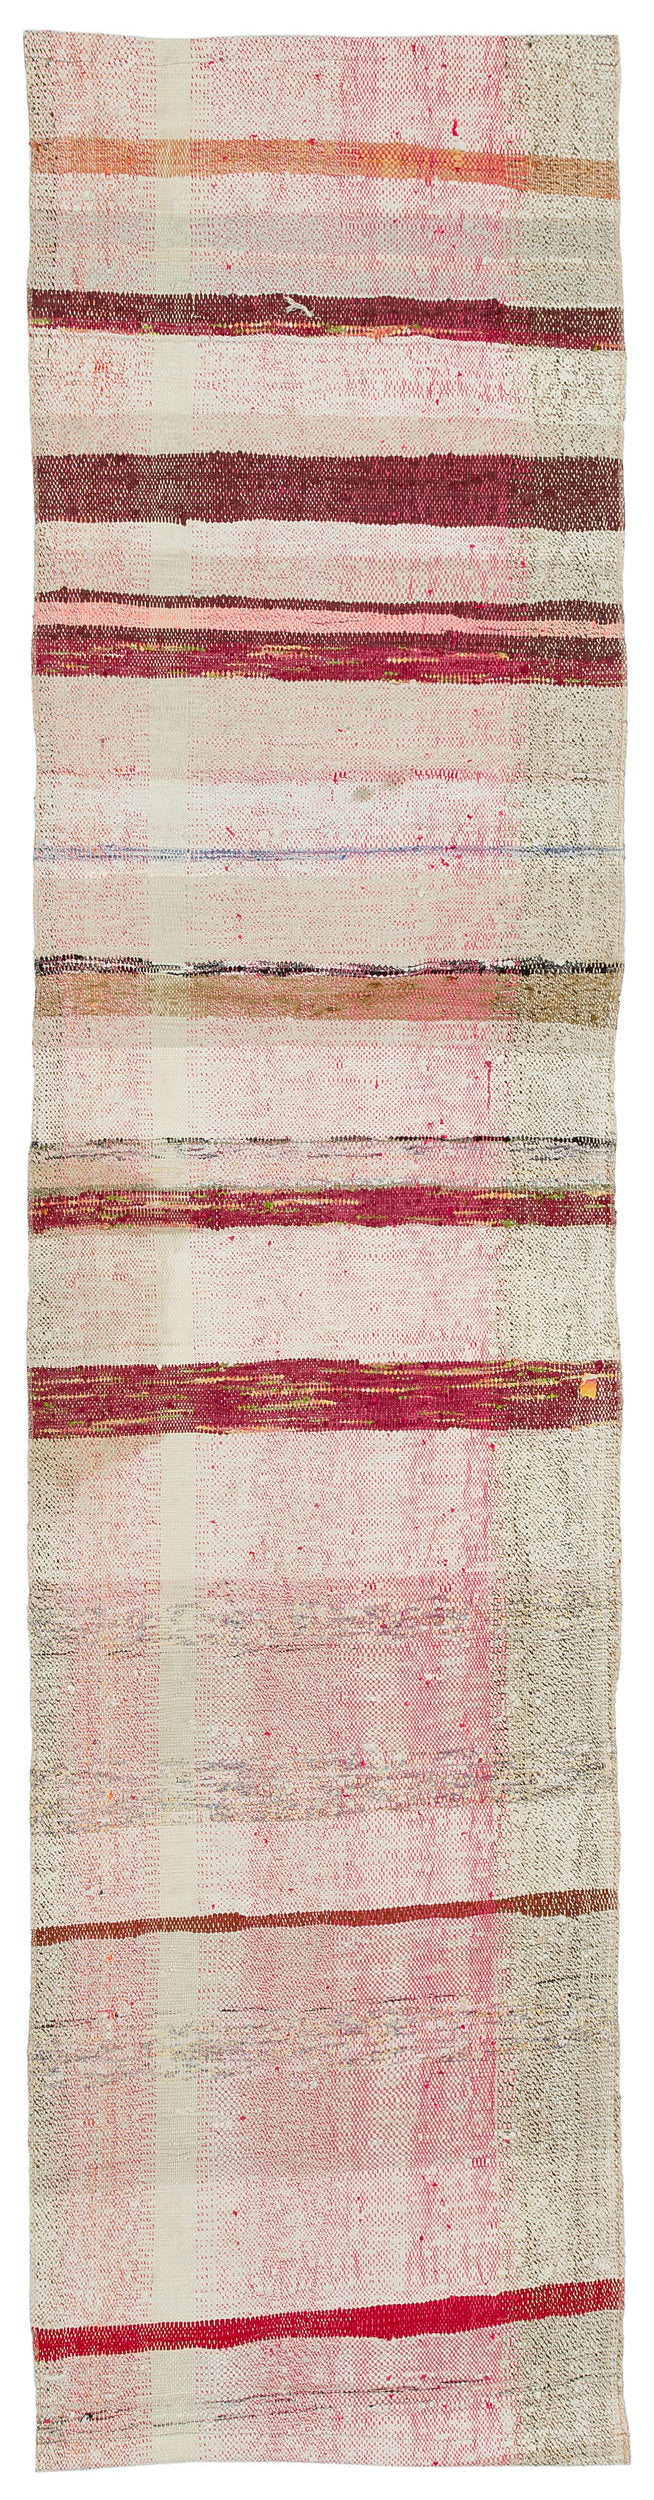 Chaput Over Dyed Kilim Rug 2'0'' x 8'5'' ft 61 x 257 cm